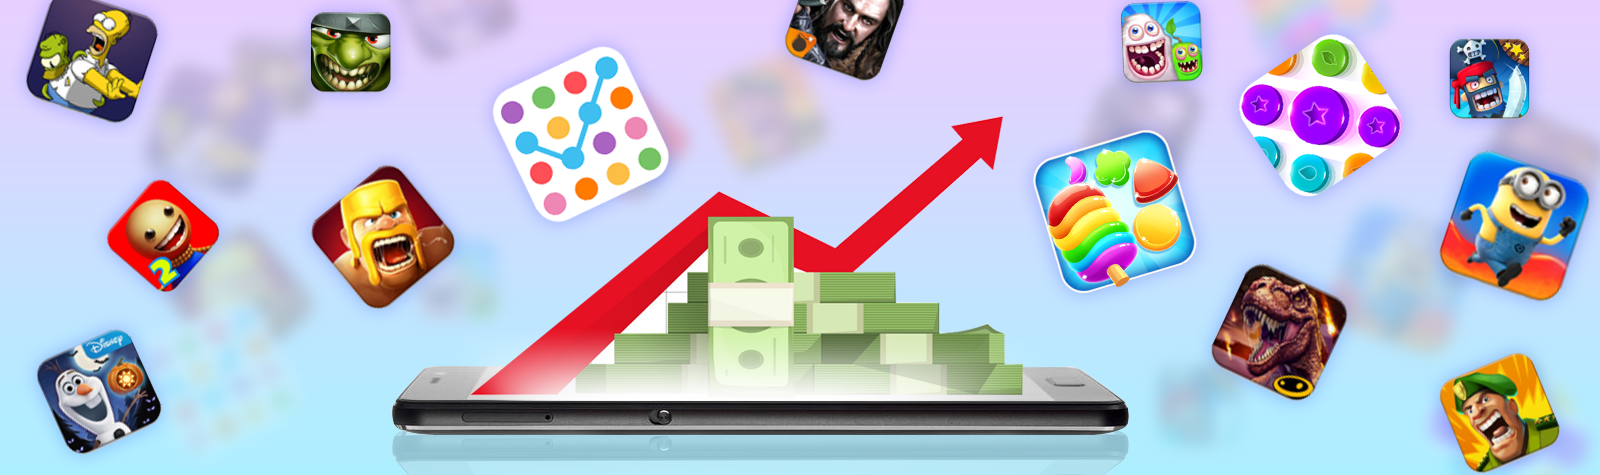 With a $70 Billion Mark Set for 2020, Advertisers Eye in-app Games